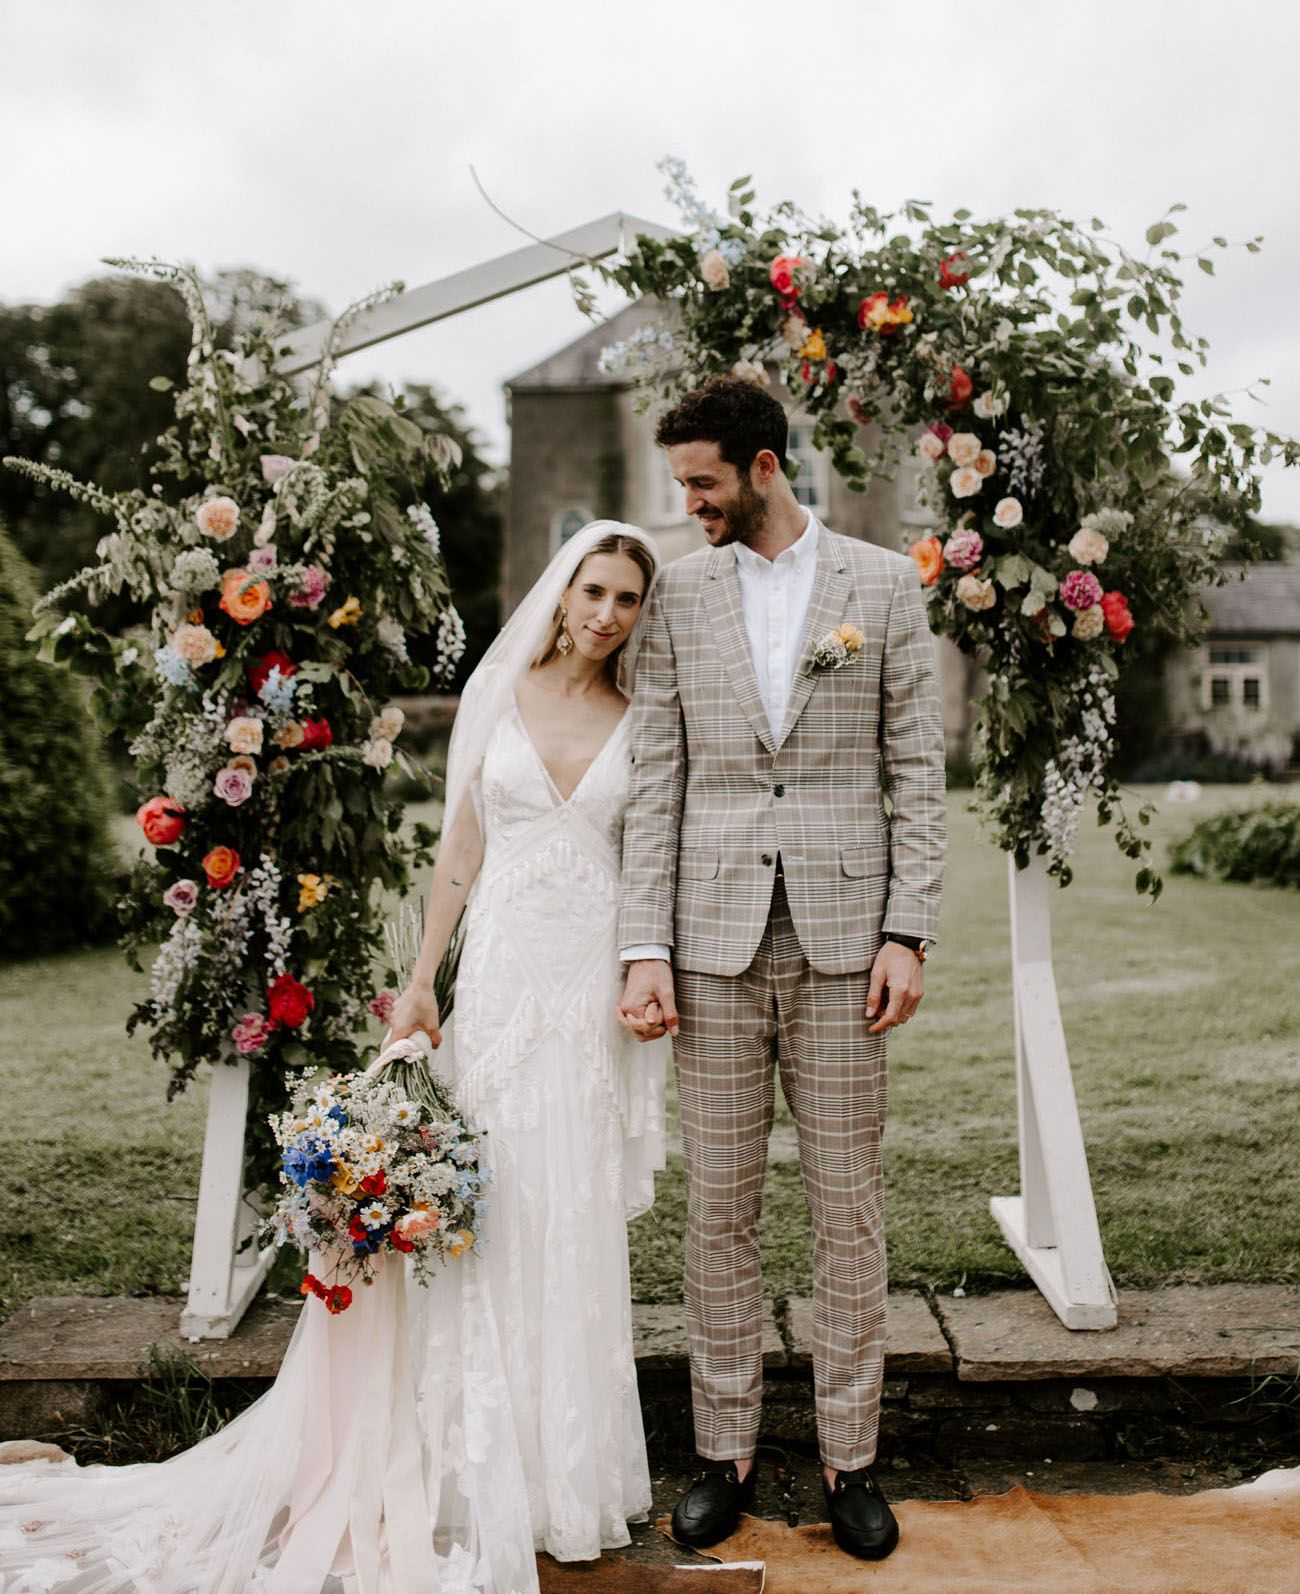 A Colorful + Intimate Wildflower-Inspired Wedding In An